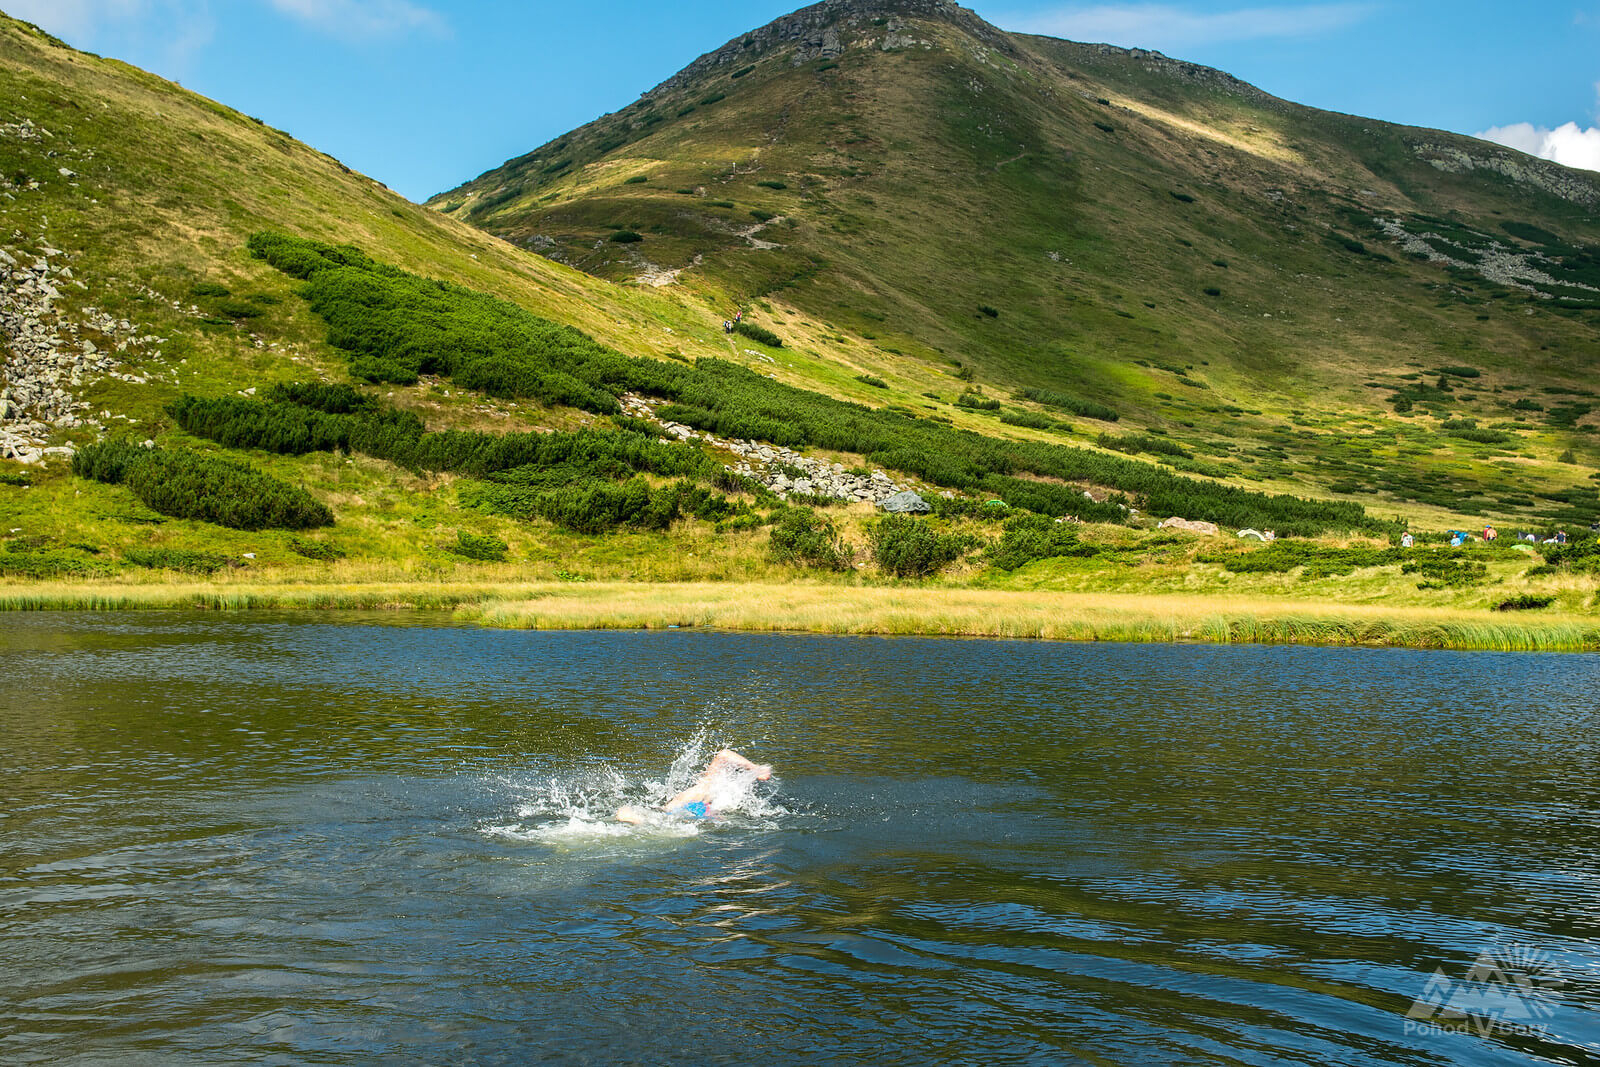 Swimming in the mountain lake Nesamovyte